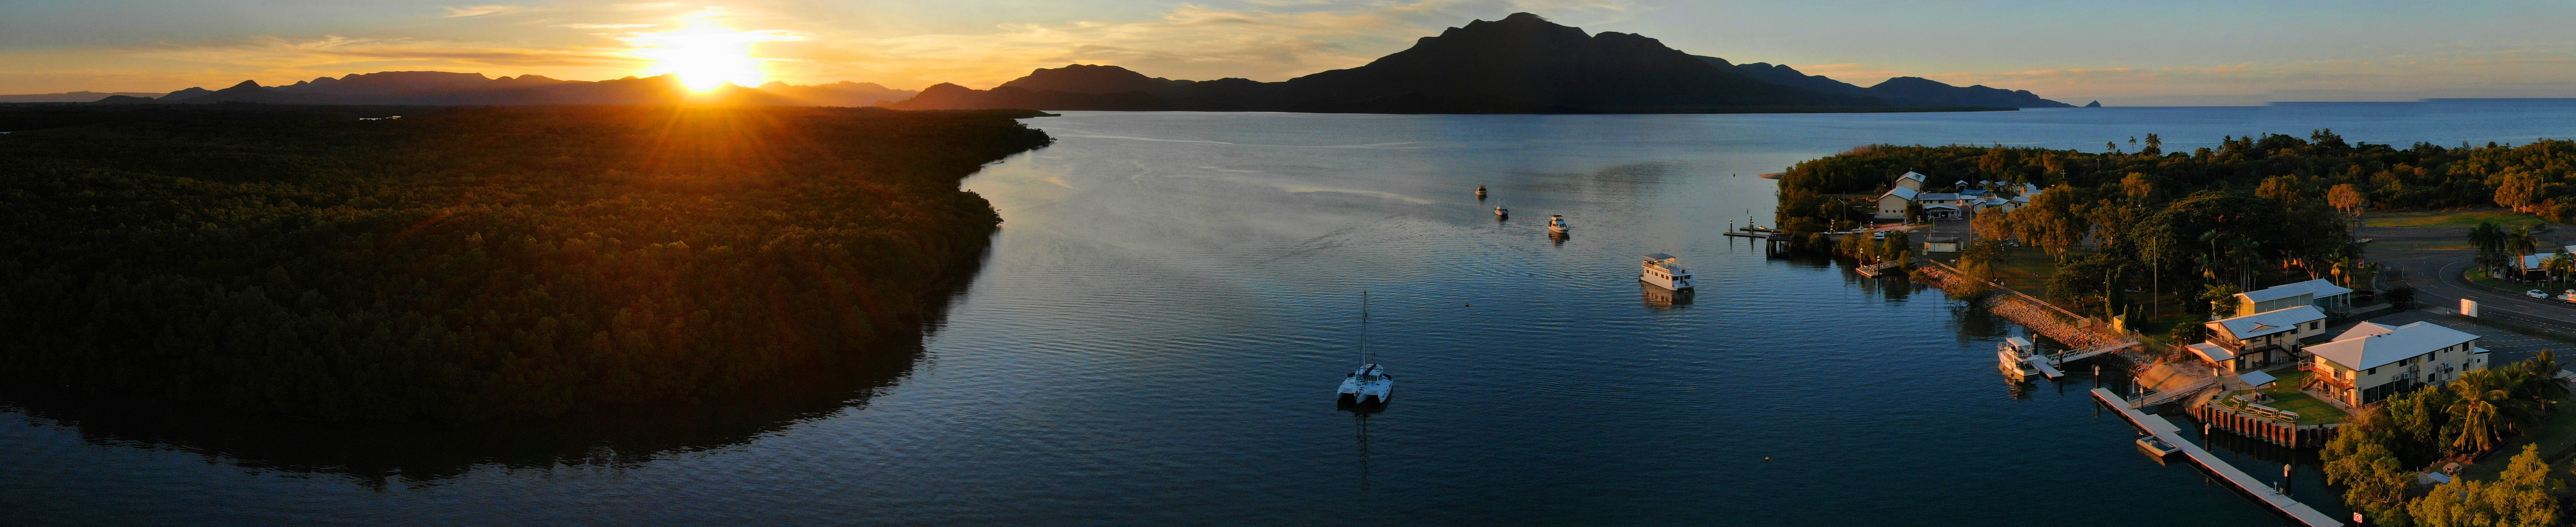 Hinchinbrook Marine Cove Resort - Mount Gambier Accommodation